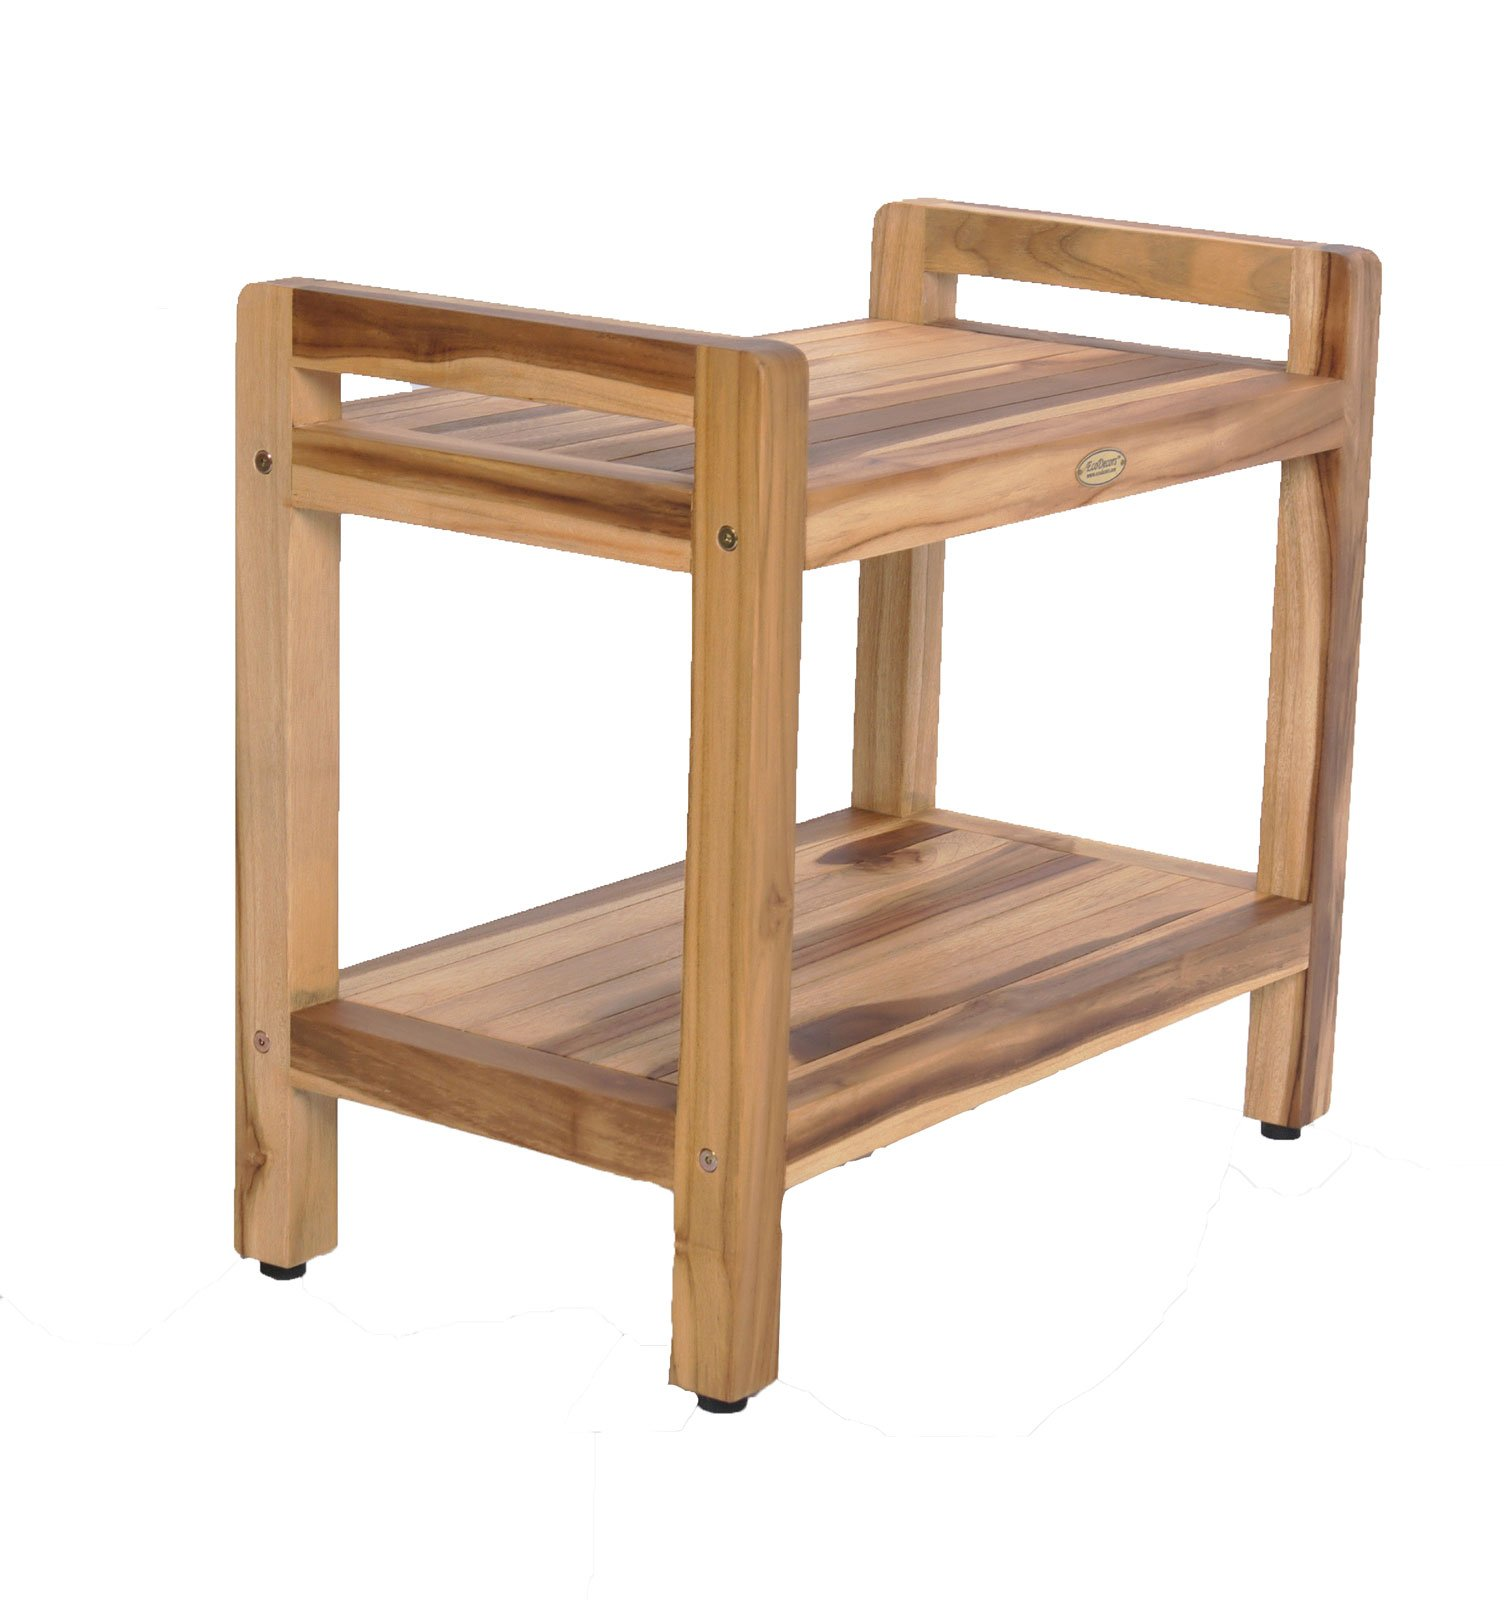 24'' EcoDecors EarthyTeak™ Teak Shower Bench with Shelf and Ergonomic Lift Aid Arms by EcoDecors